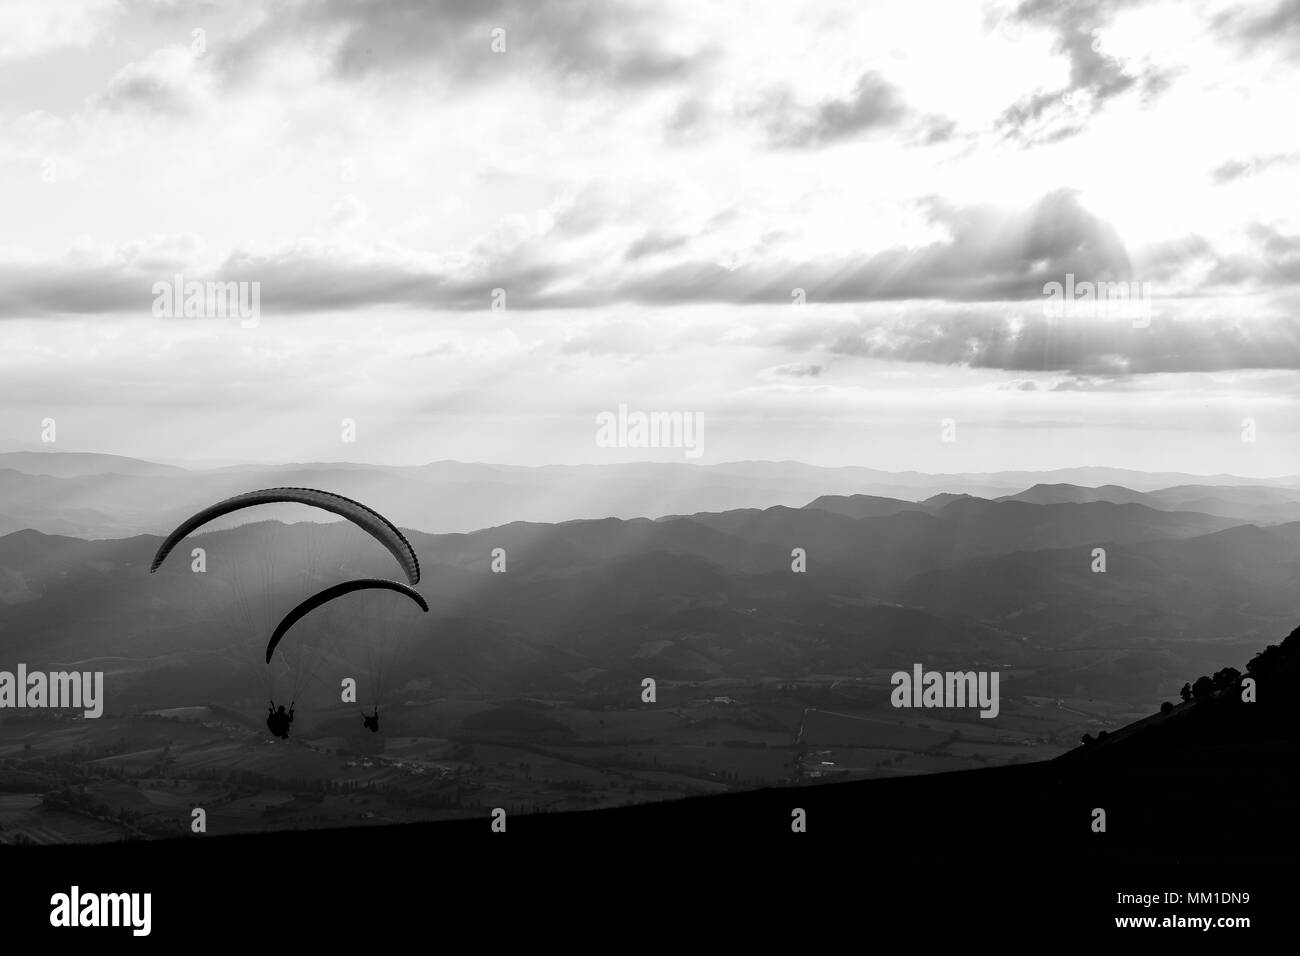 Some paragliders flying over a mountain scenery, with some faint sunrays in the background - Stock Image